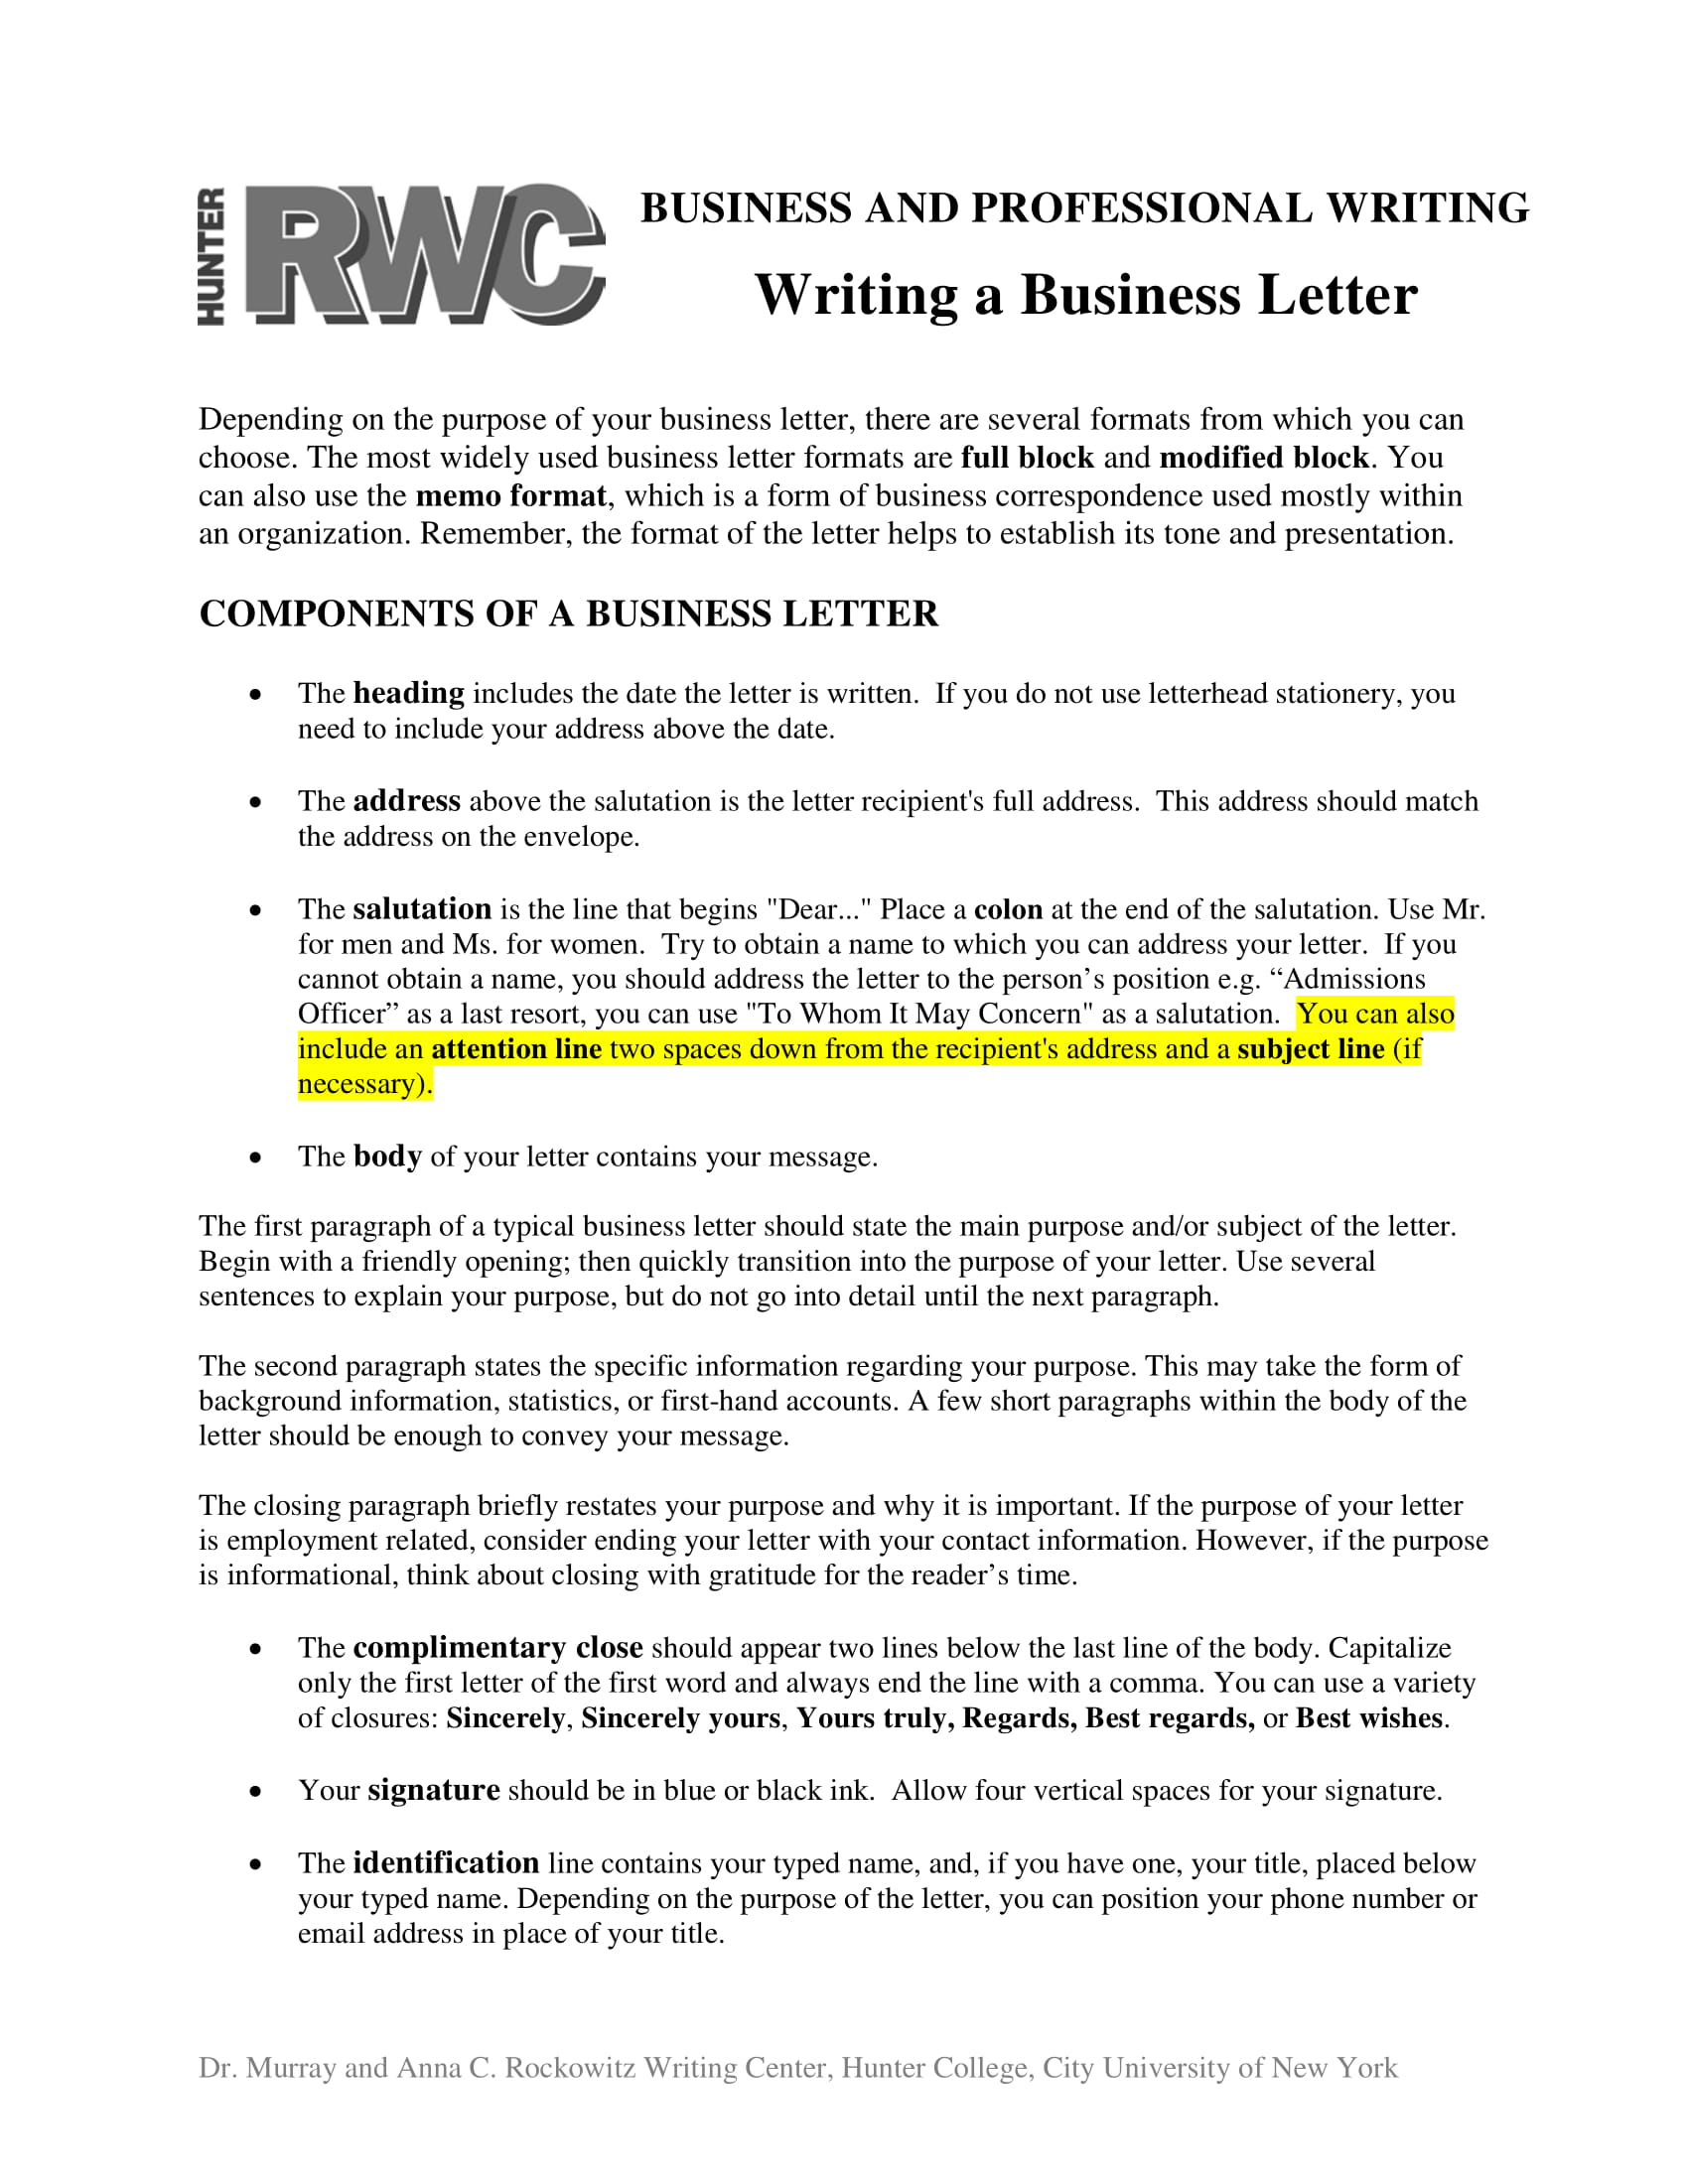 business letter writing tips and example